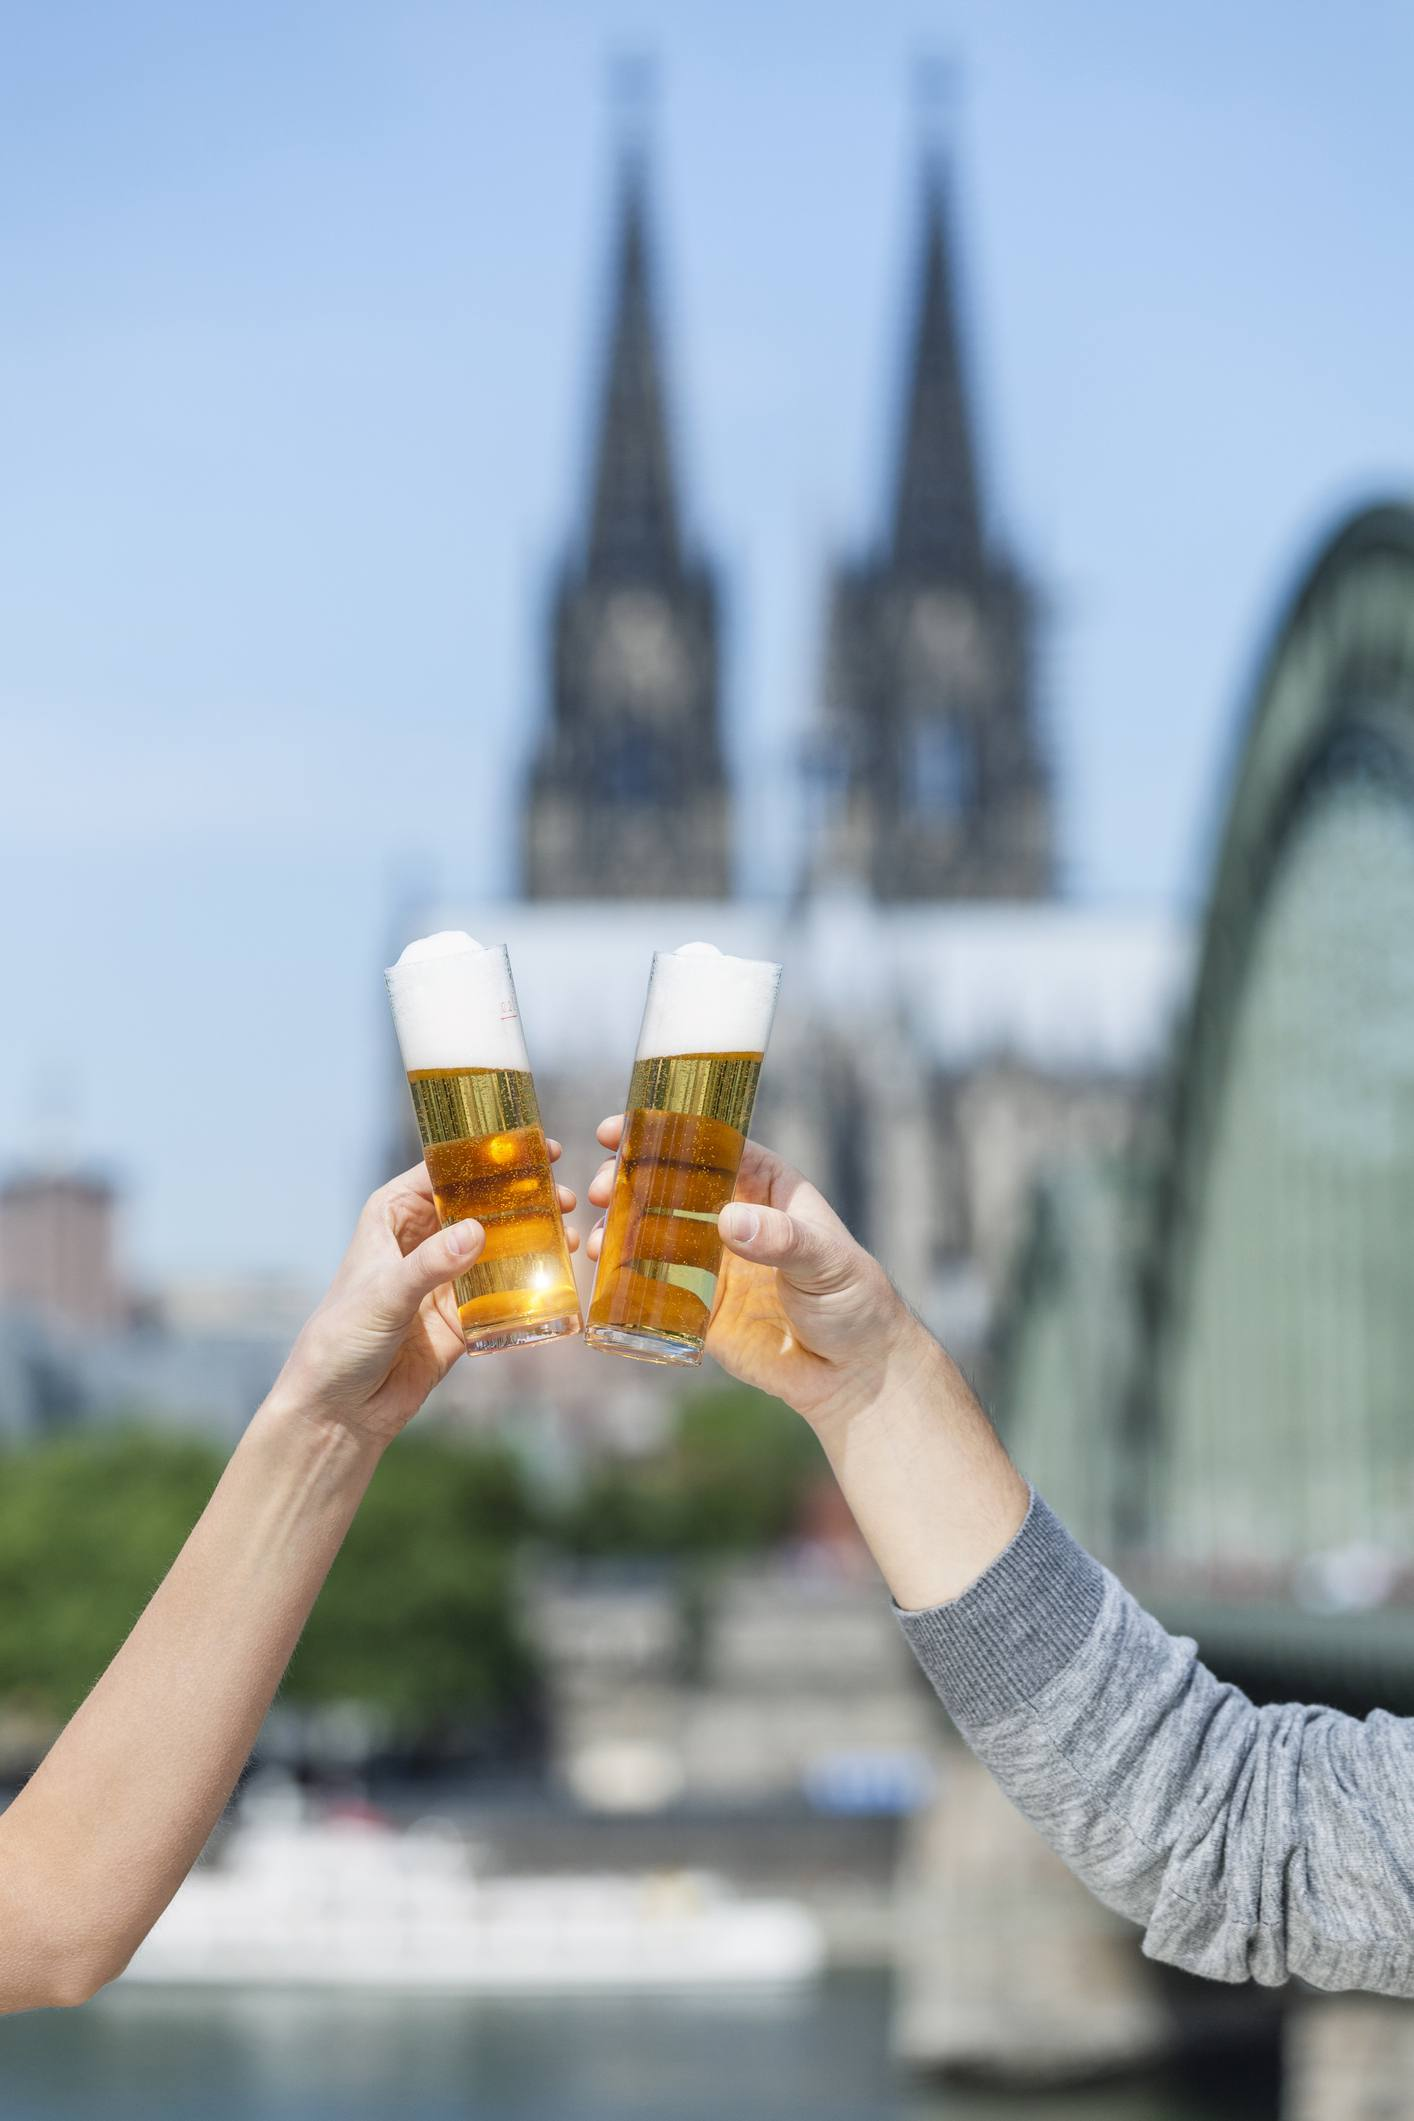 Koelsch in Cologne